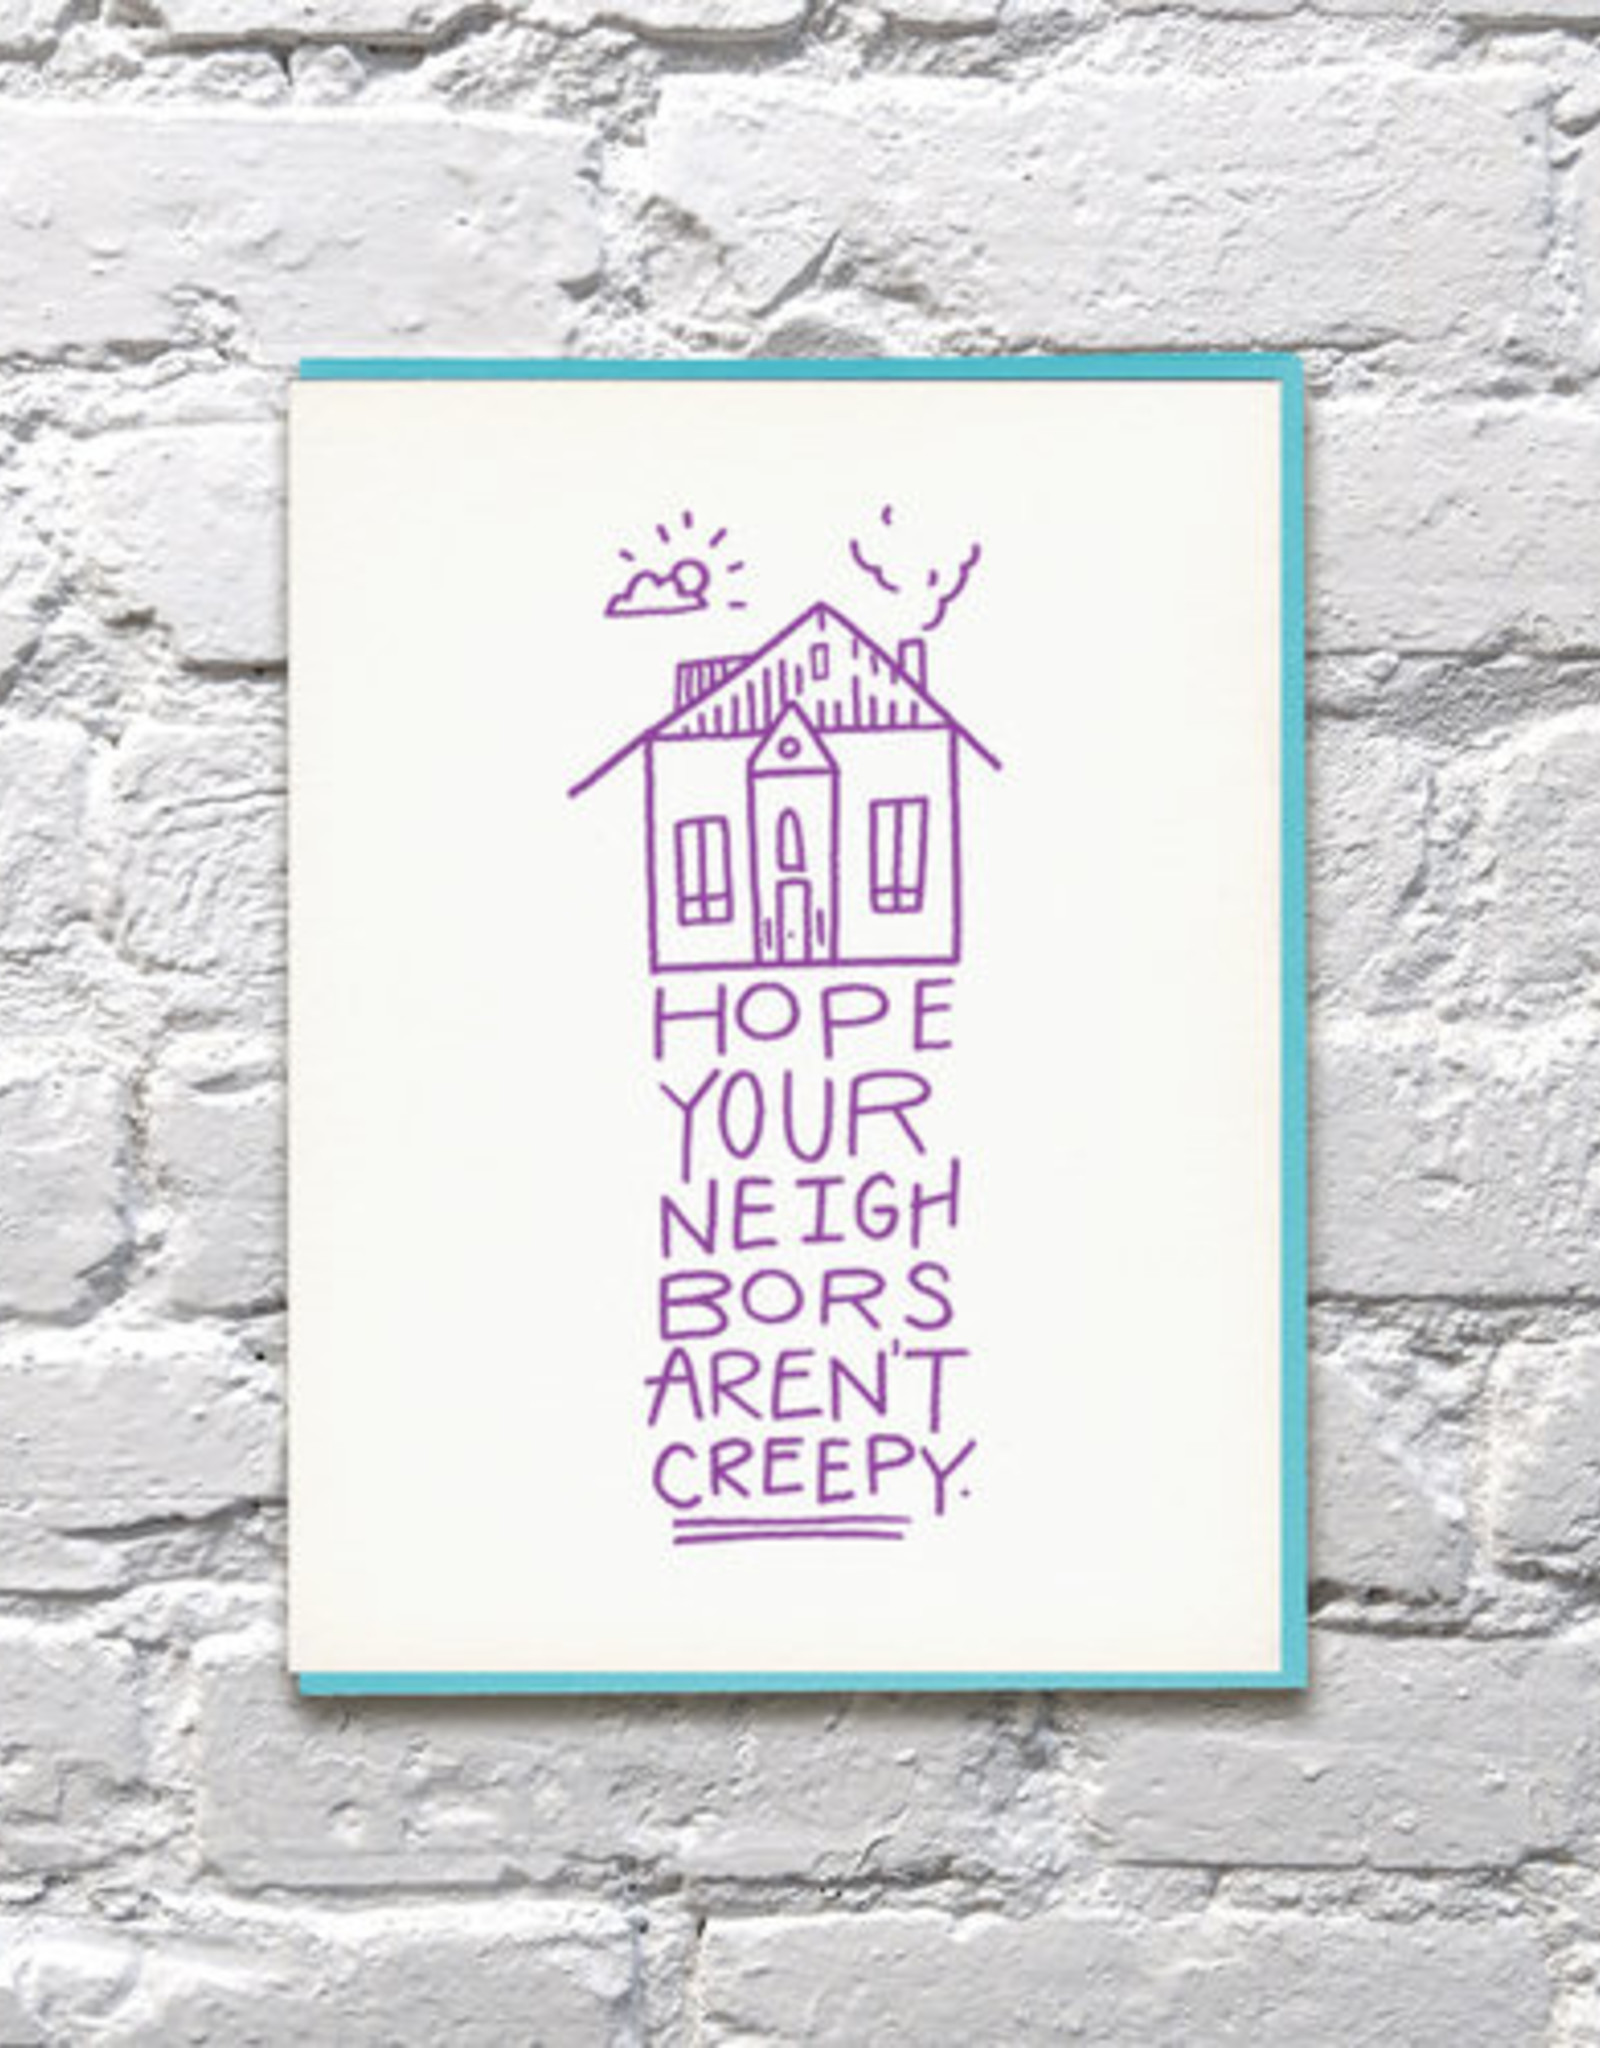 Bench Pressed Card - Blank: Hope your neighbors aren't creepy